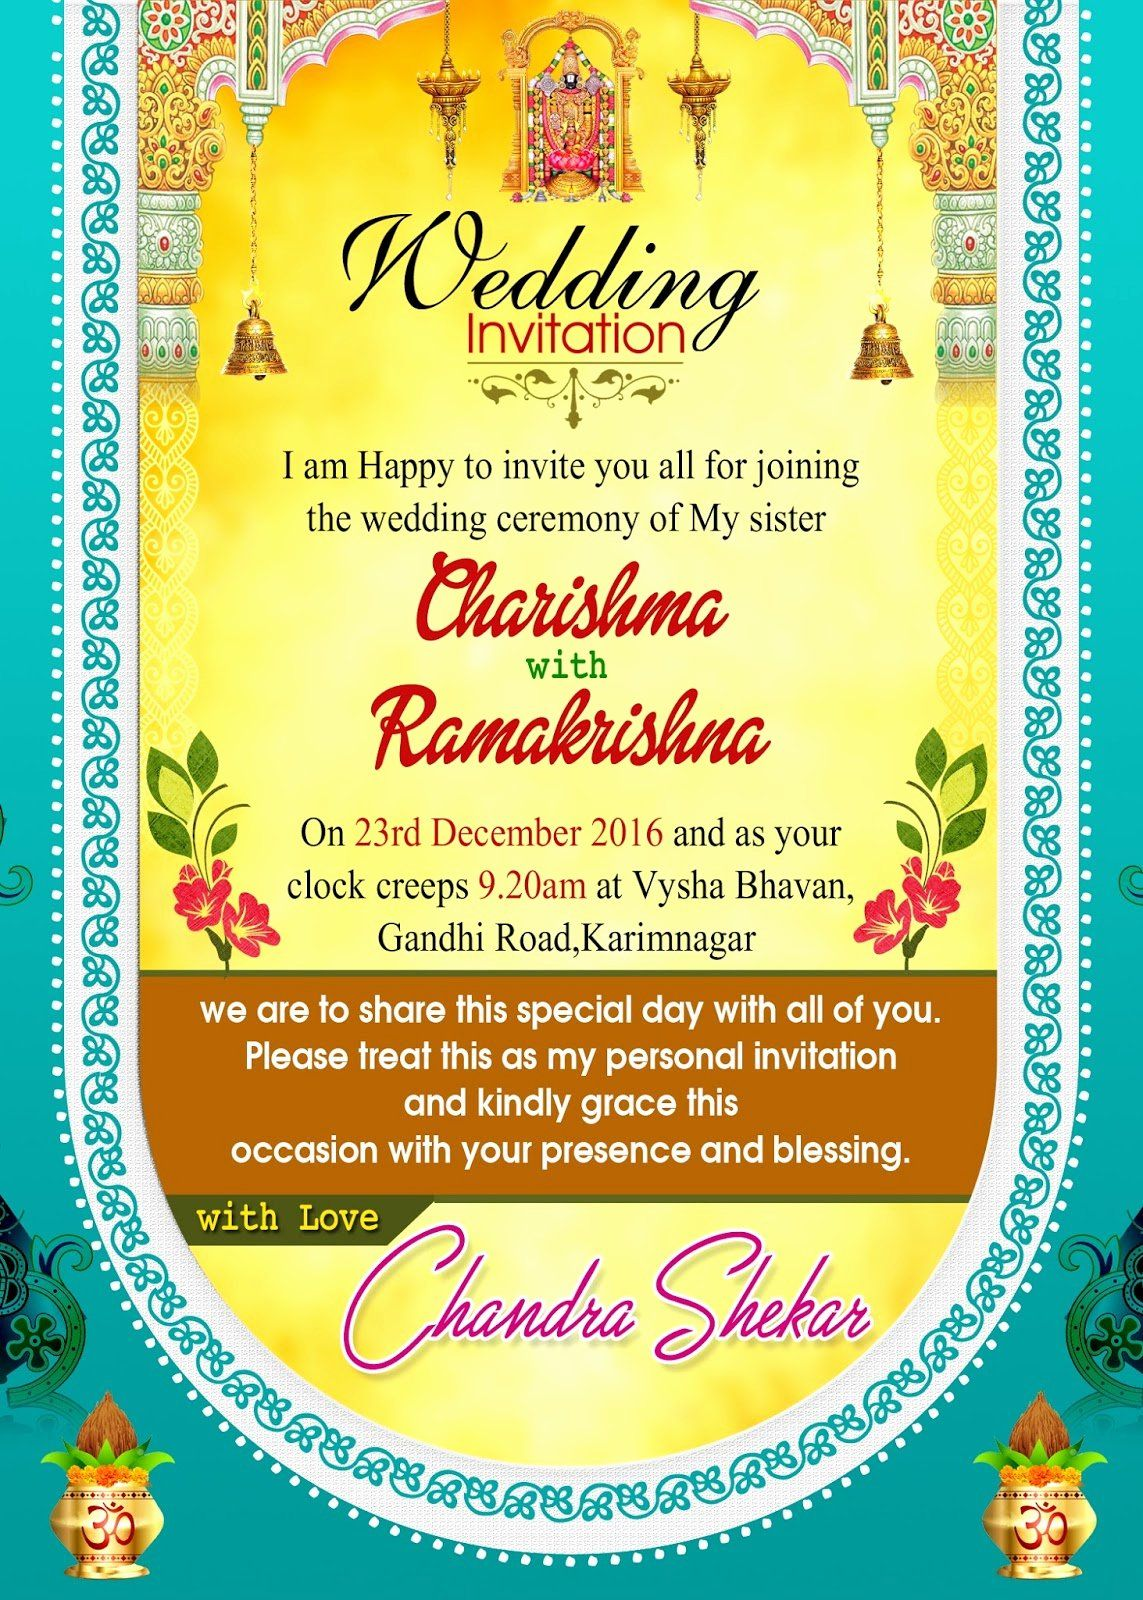 Wedding Card Invitation Template Lovely Indian Wedding Invitation Wordin Indian Wedding Invitation Wording Indian Wedding Invitations Hindu Wedding Invitations